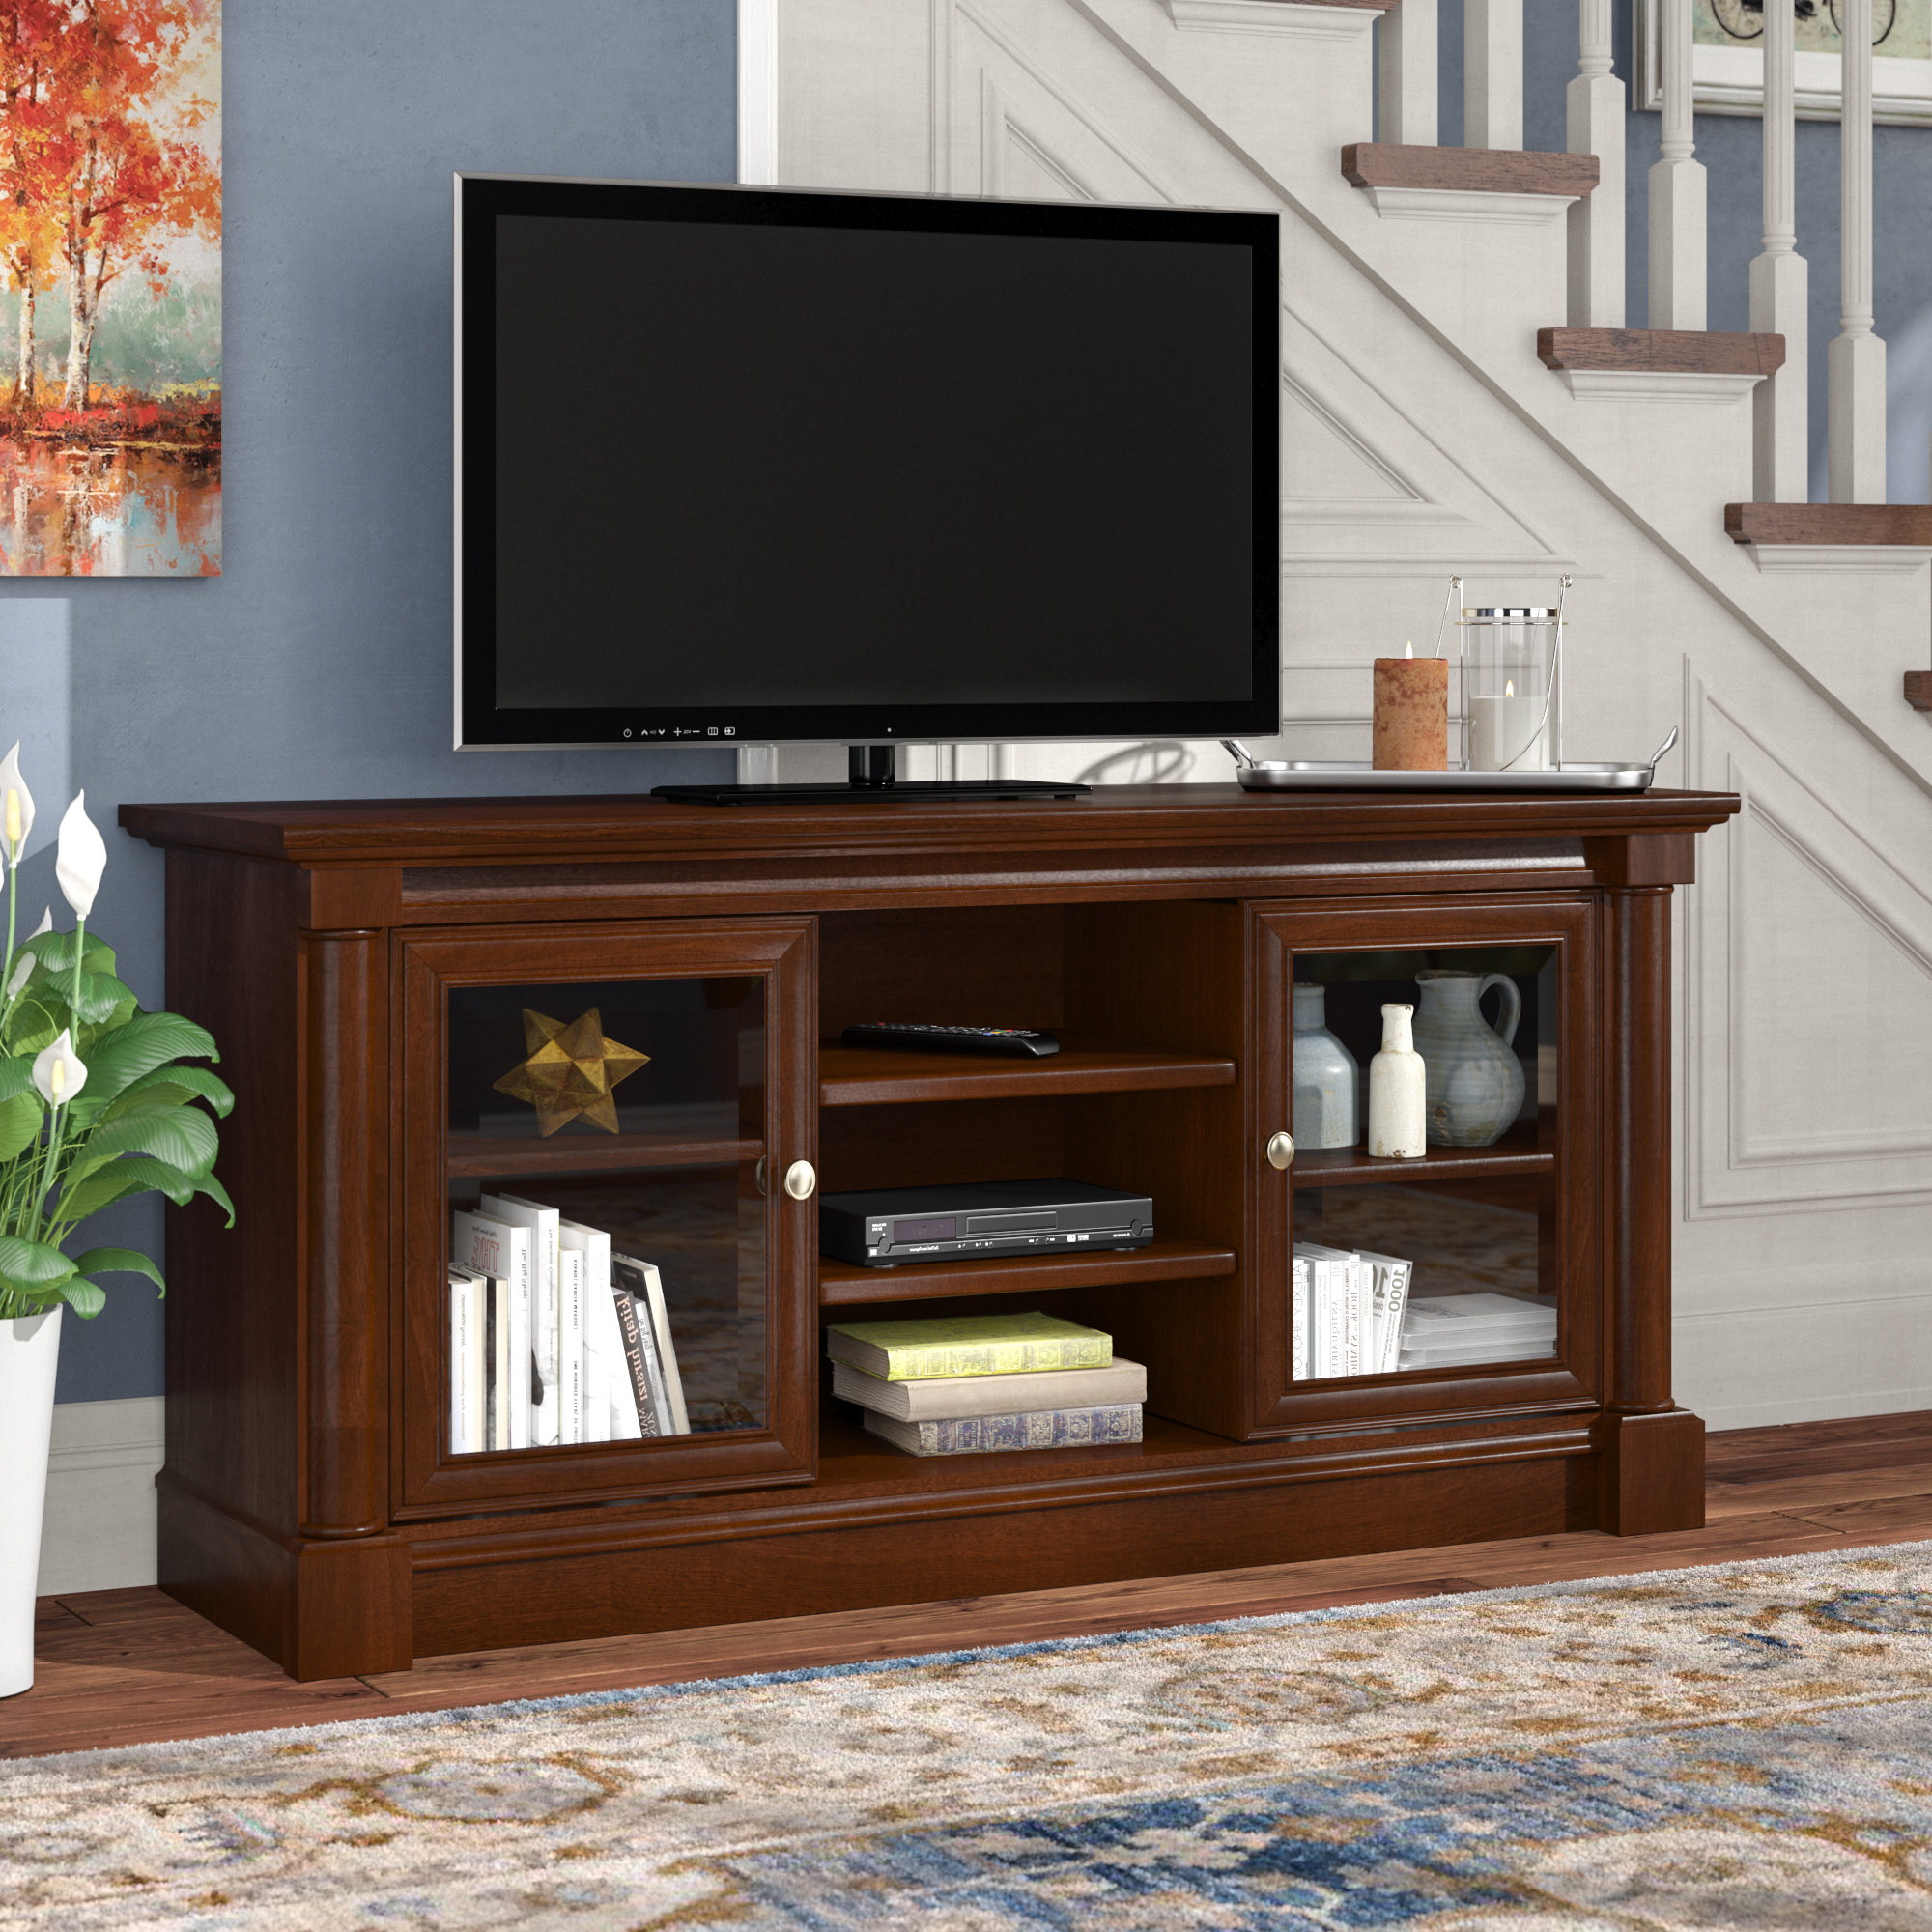 Famous 60 64 Inch Tv Stands (Gallery 3 of 20)